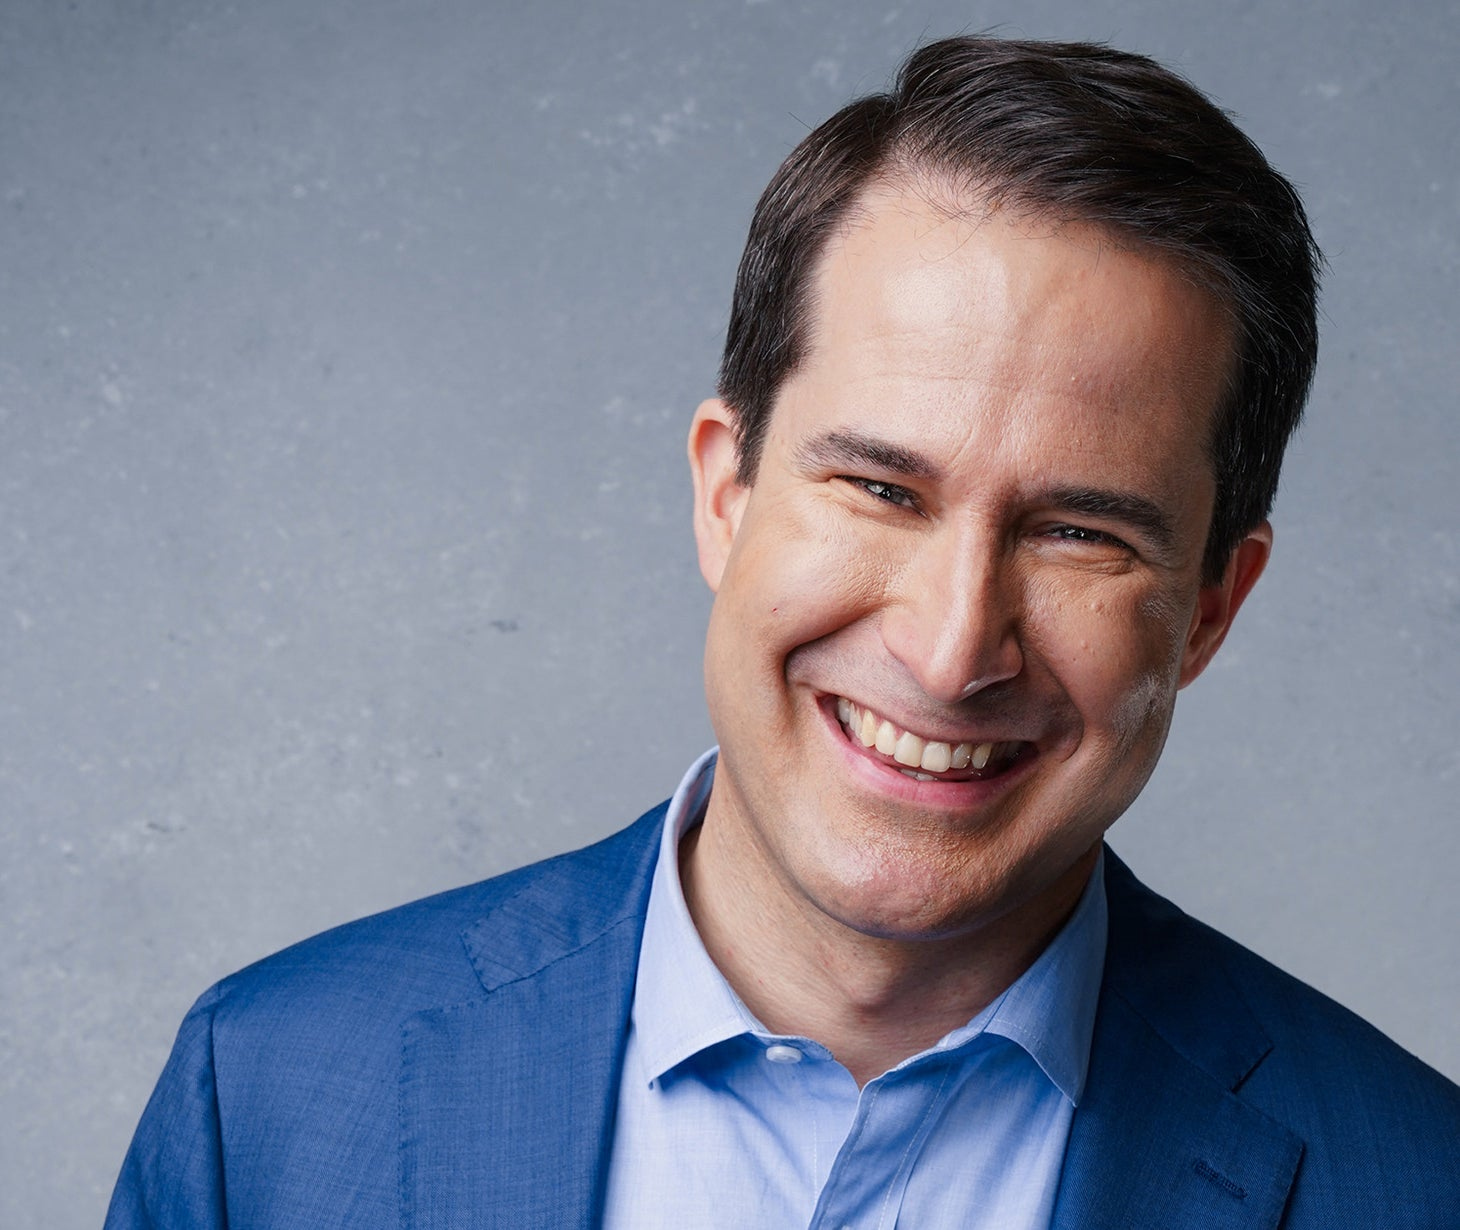 Seth Moulton poses for a portrait at the BuzzFeed News studios in New York.